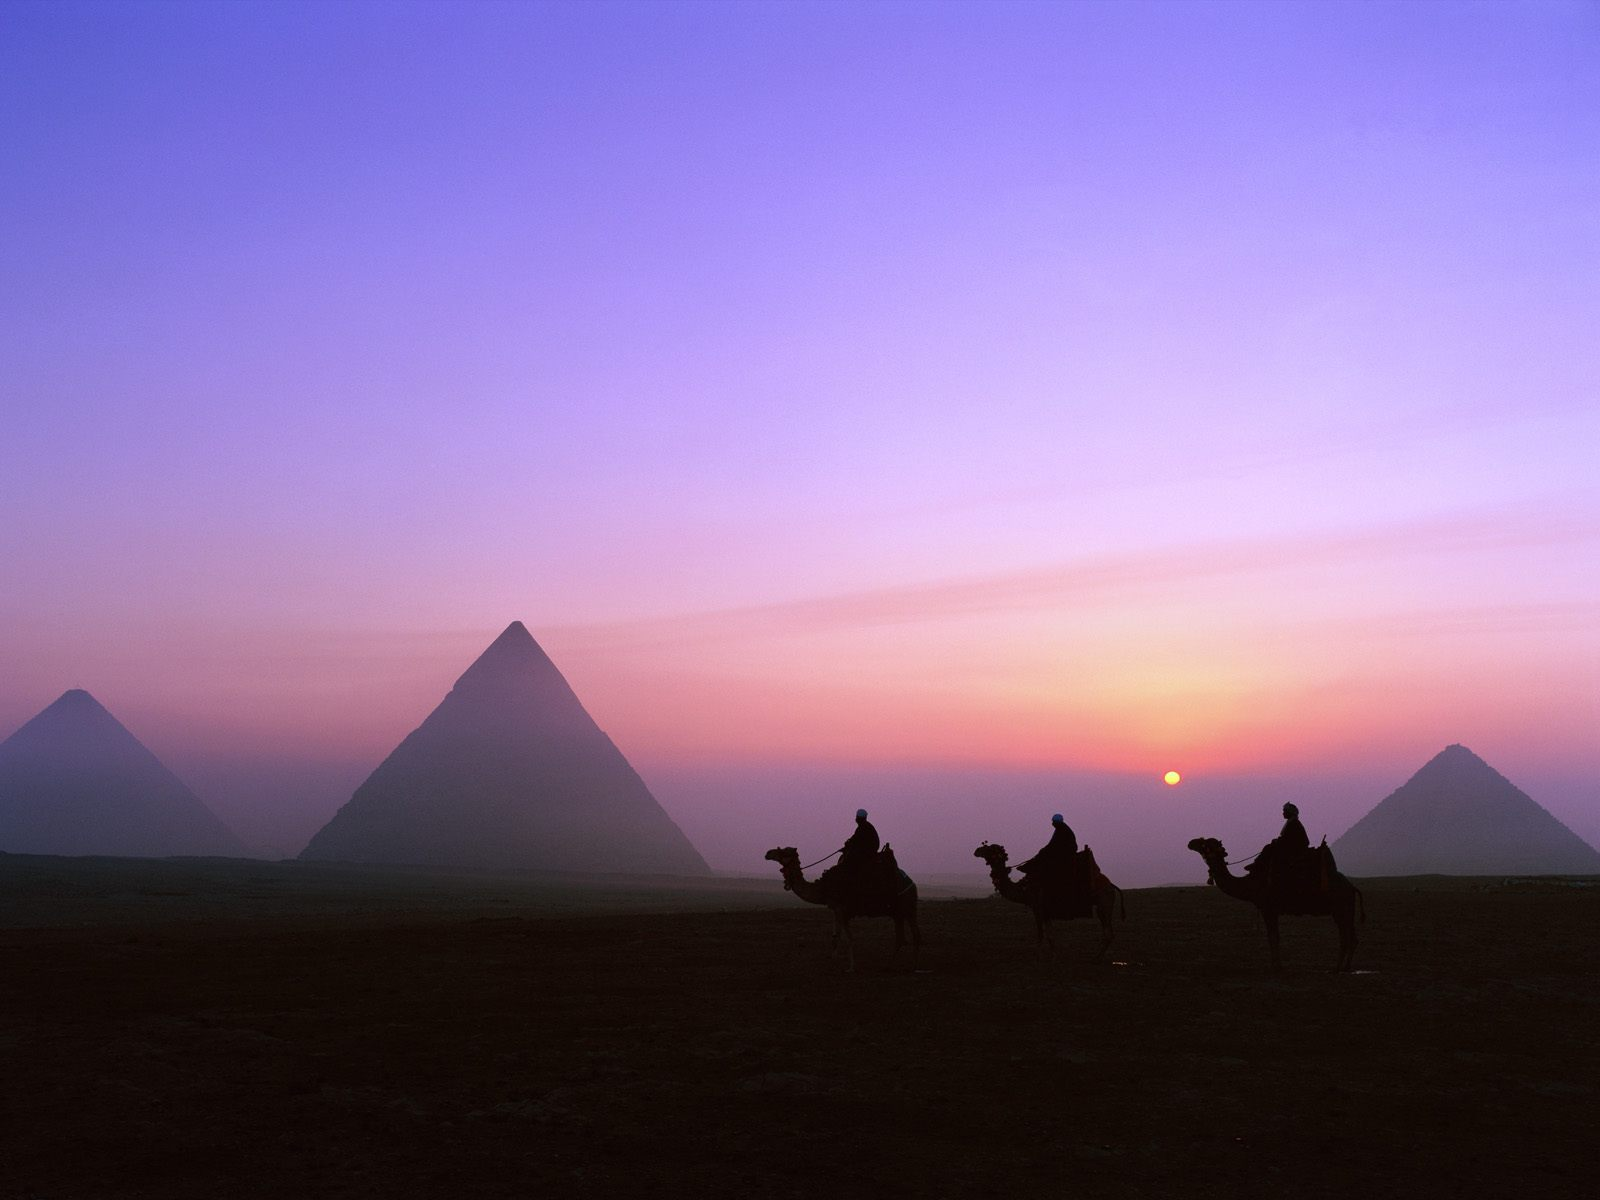 Egypt Mystic Journey hd Wallpaper High Quality WallpapersWallpaper 1600x1200